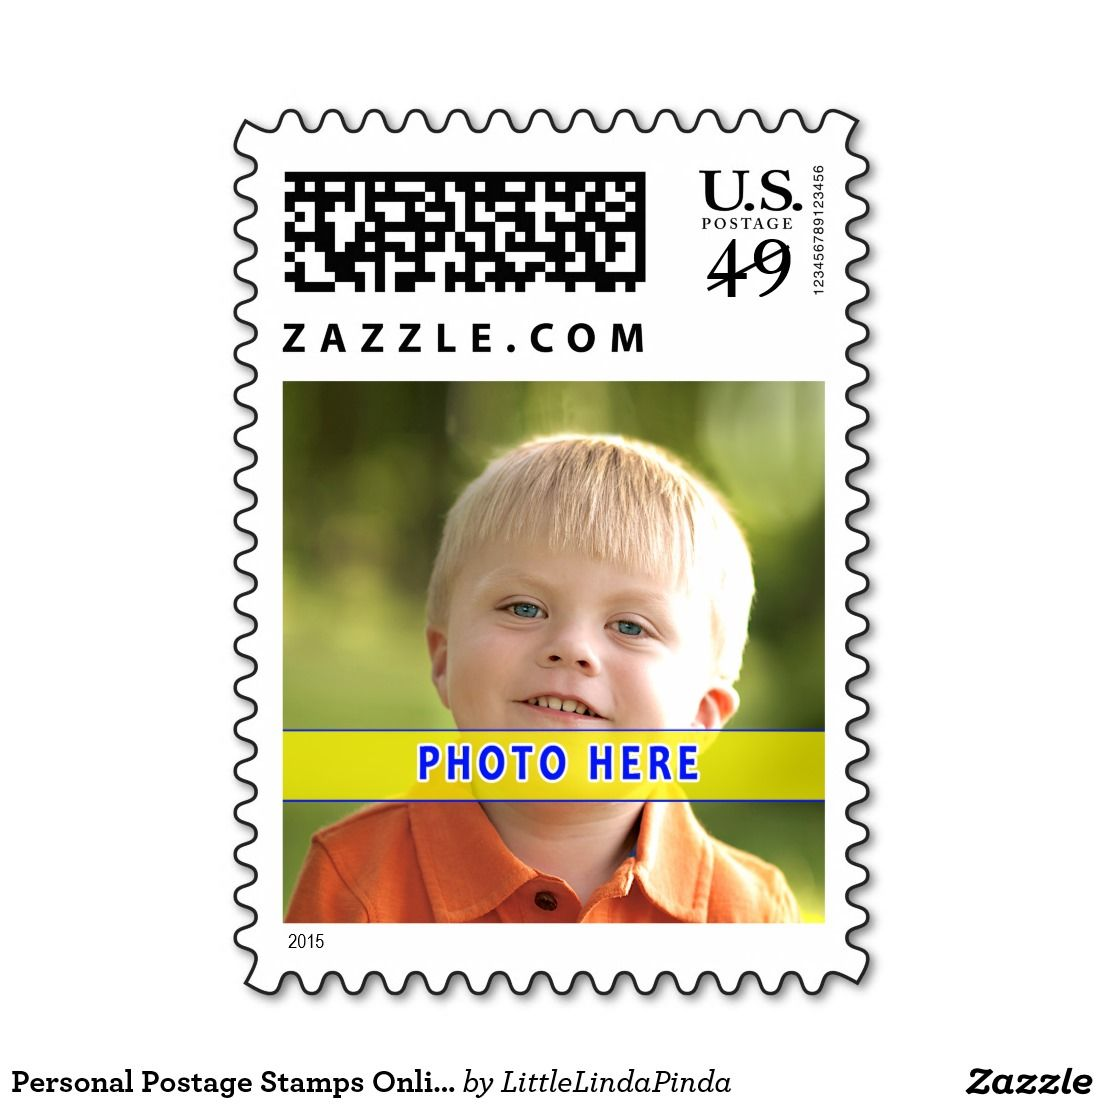 Personal Postage Stamps Online NEW 49 Cent Stamps Zazzle